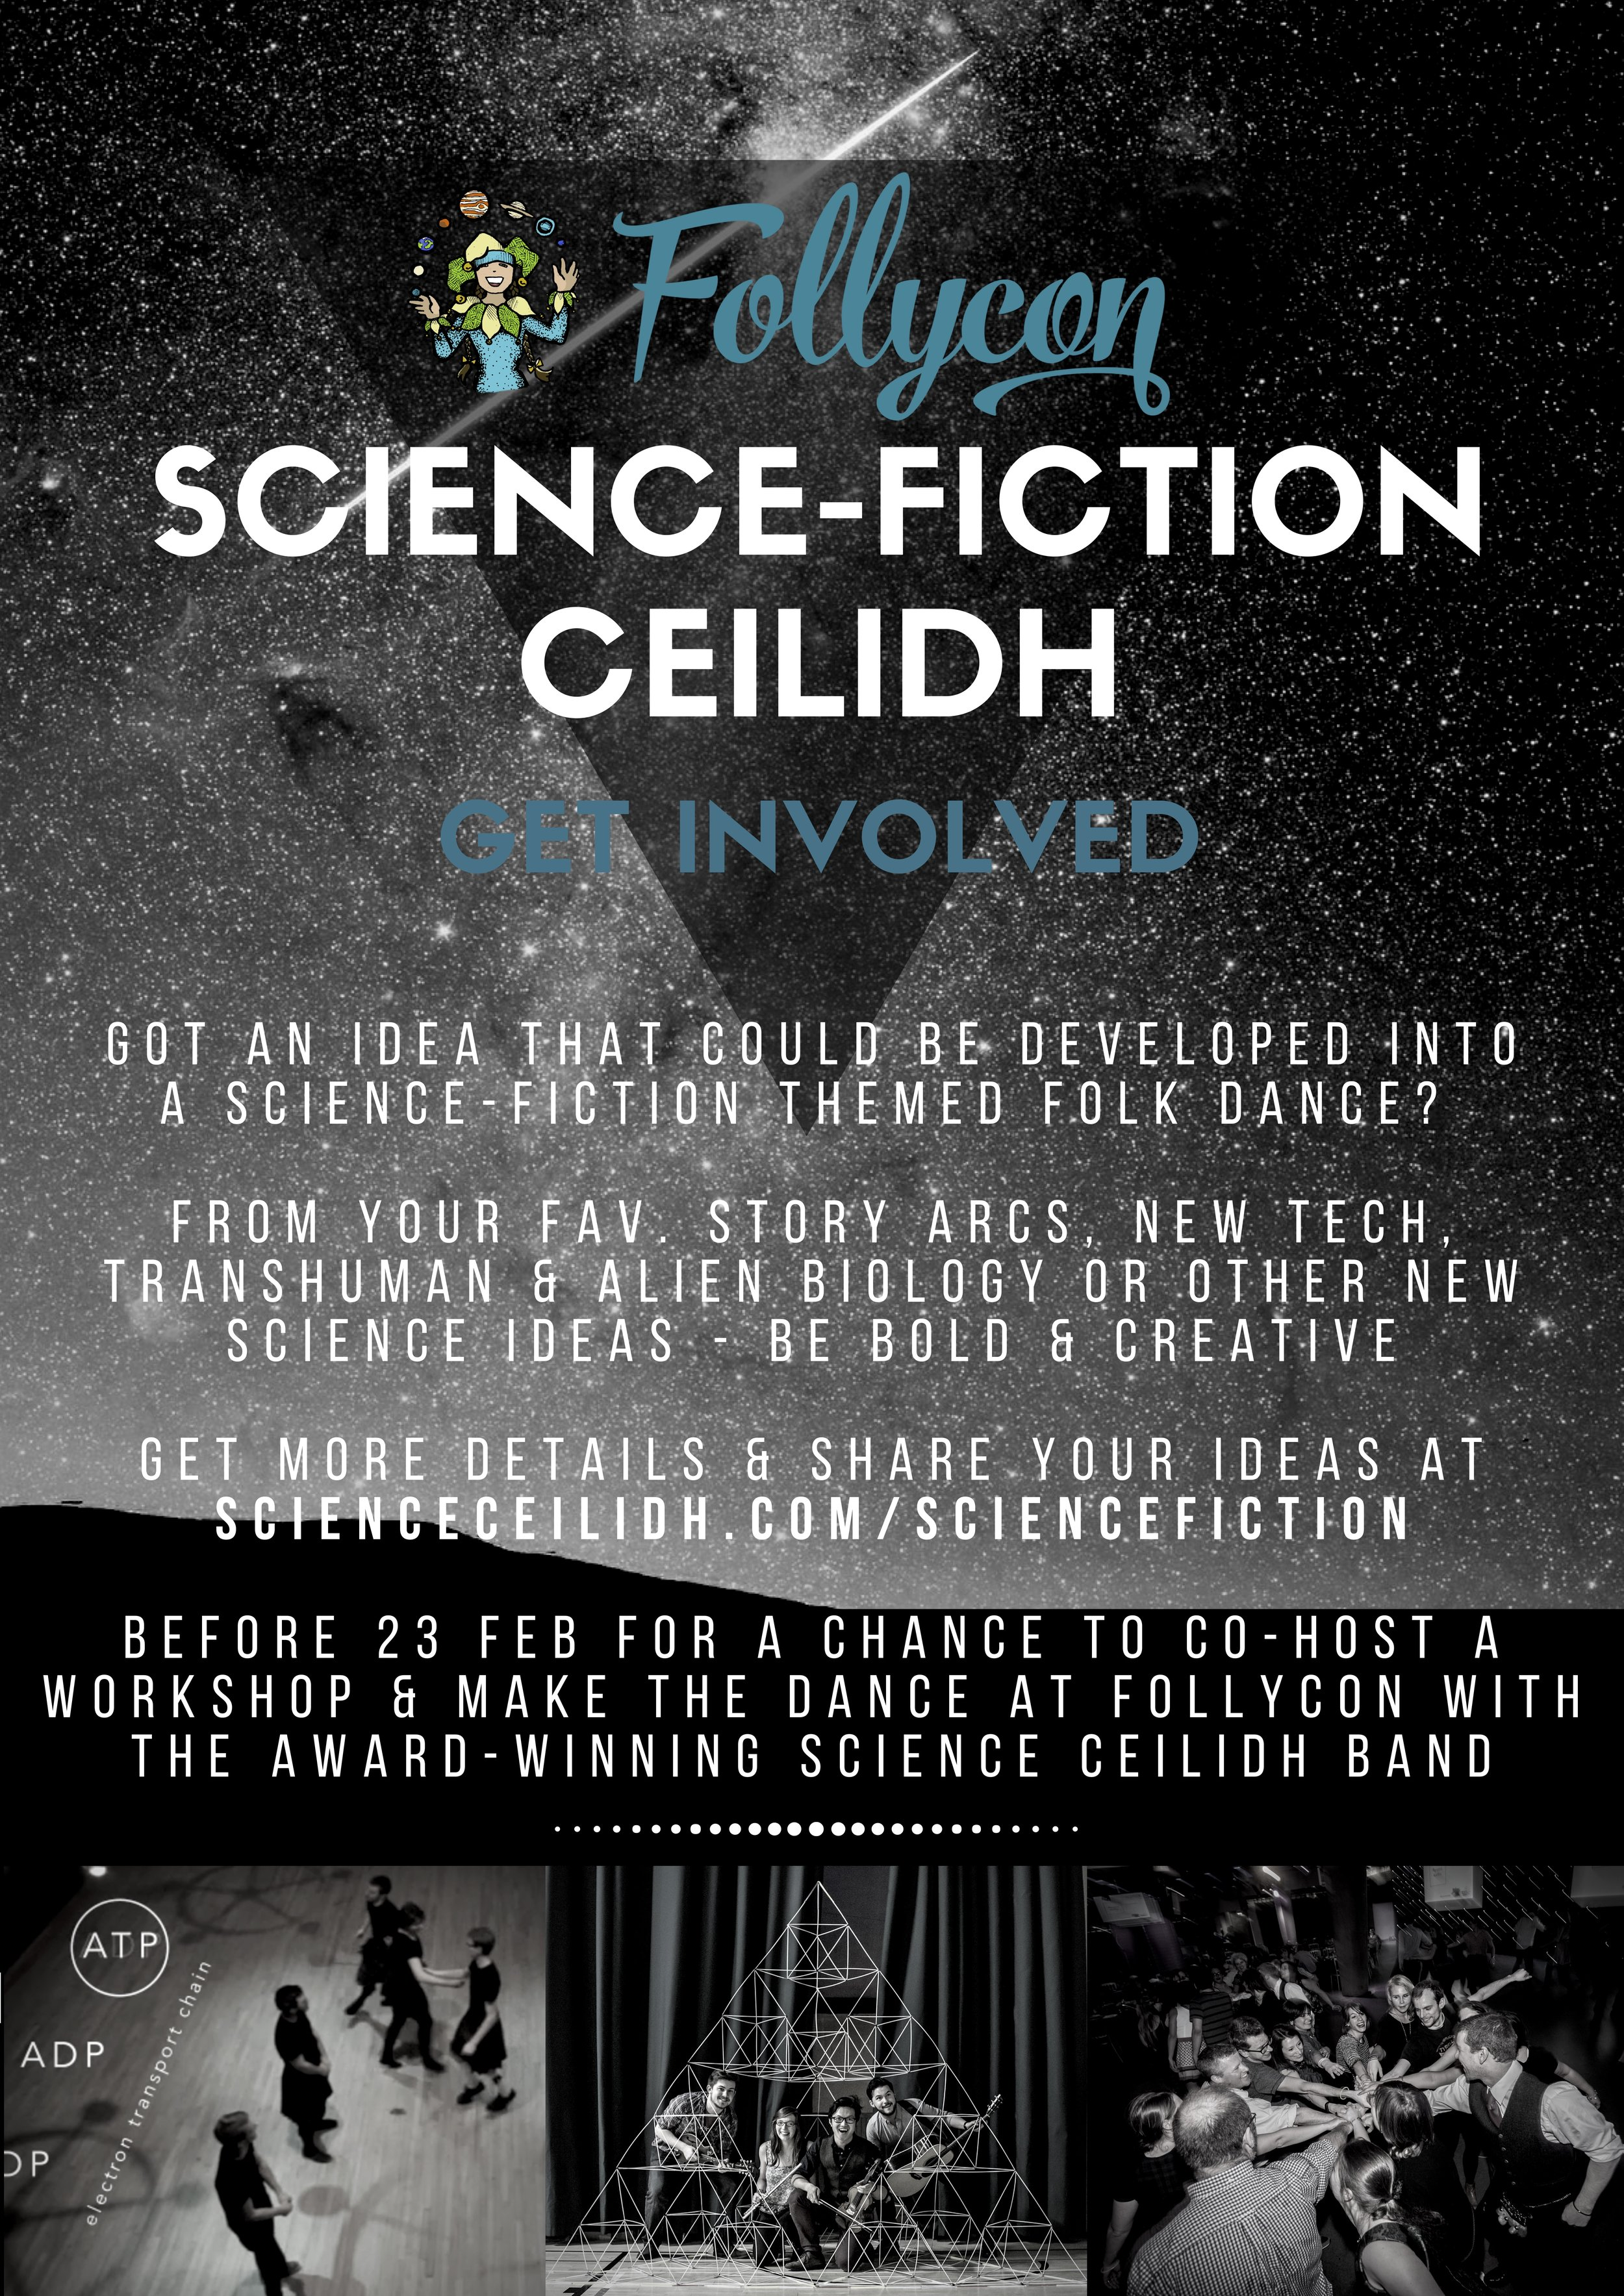 Follycon Science Fiction Ceilidh.jpg